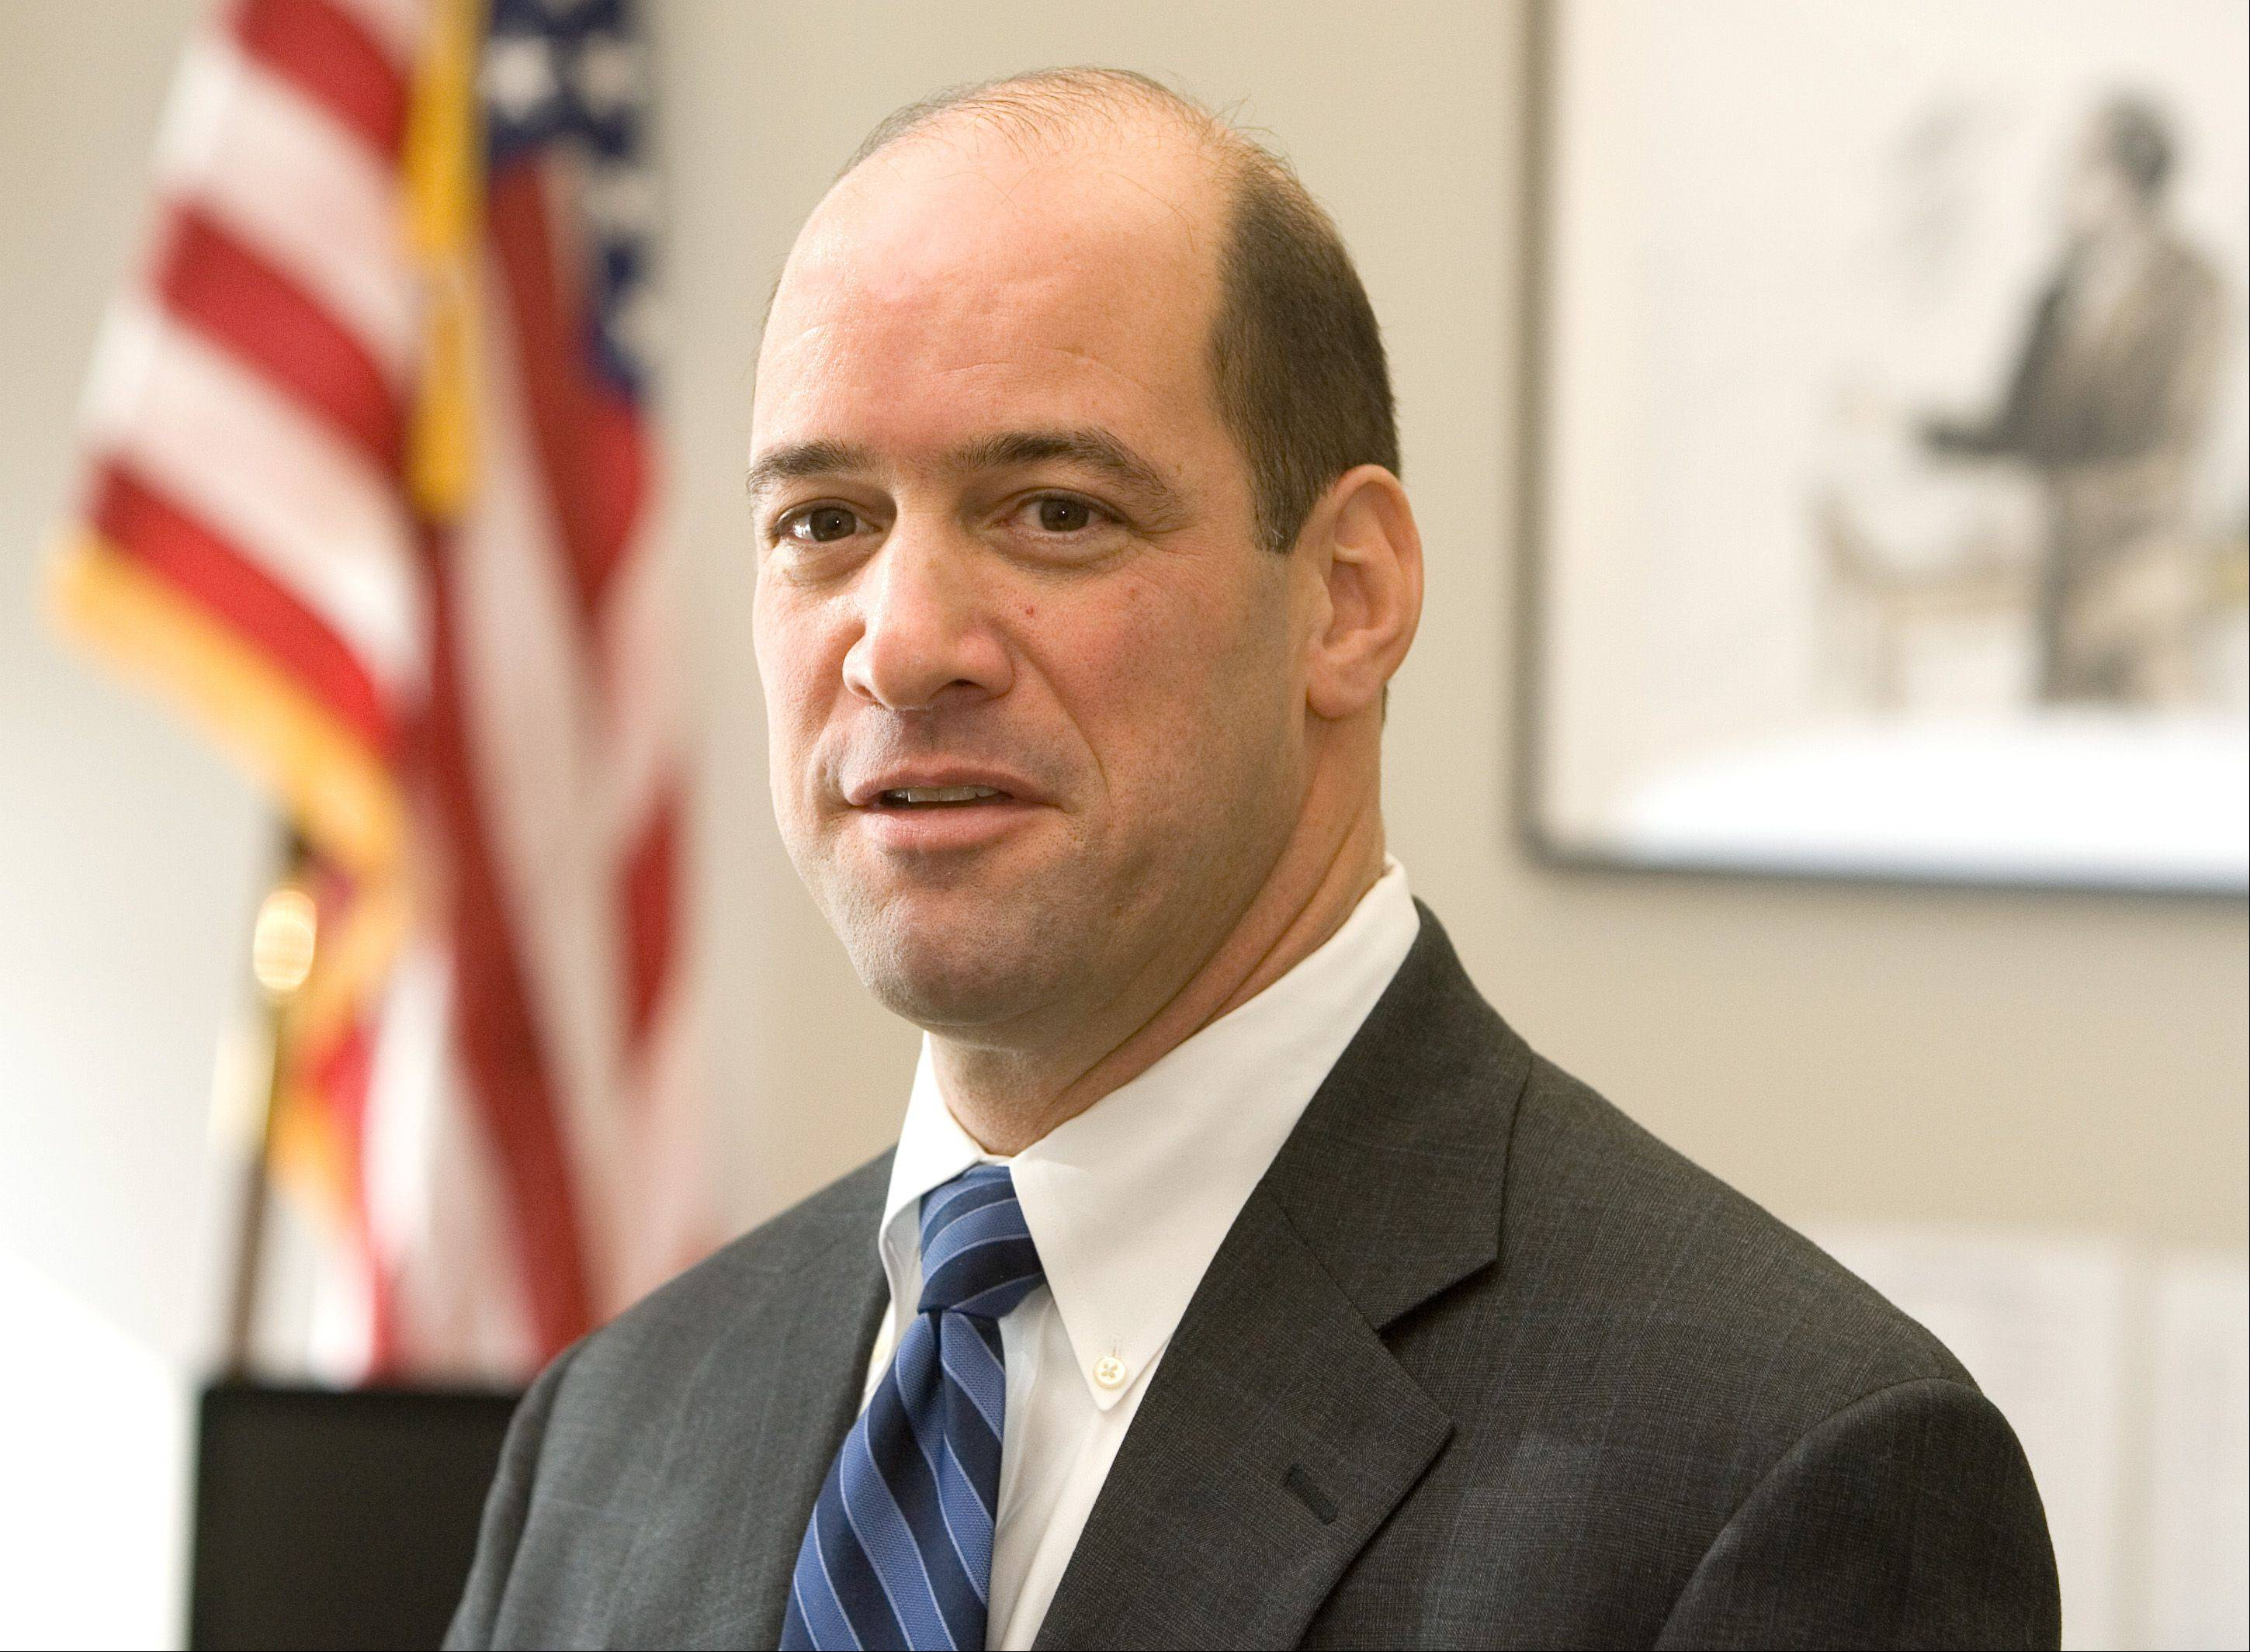 DuPage County State's Attorney Bob Berlin has enacted a new program making his office one of only two in the state to handle its own appeals.